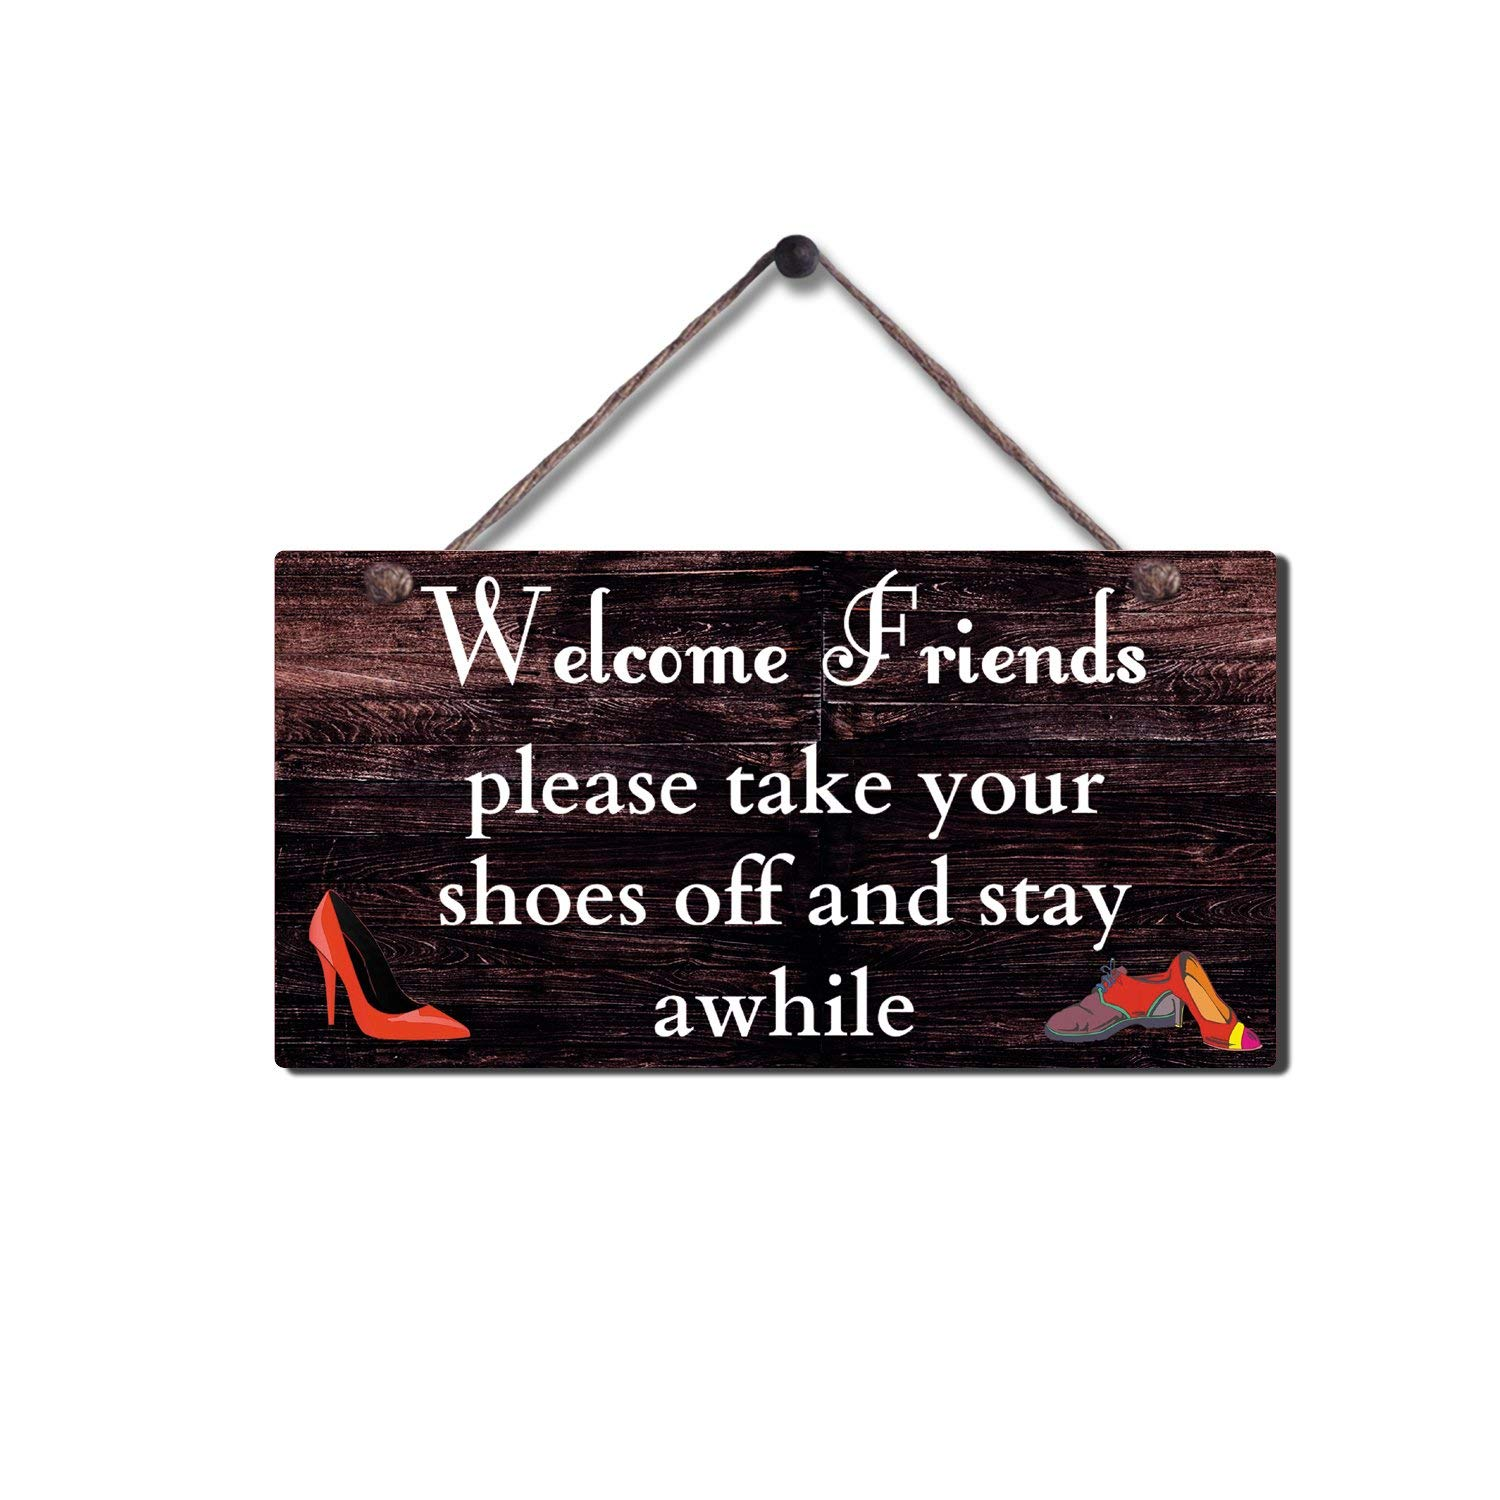 MAIYUAN Welcome Friends Please Take Your Shoes Off and Stay Awhile Rustic Wood Sign for Wall Hanging Home Decor 10 x 5 Inches